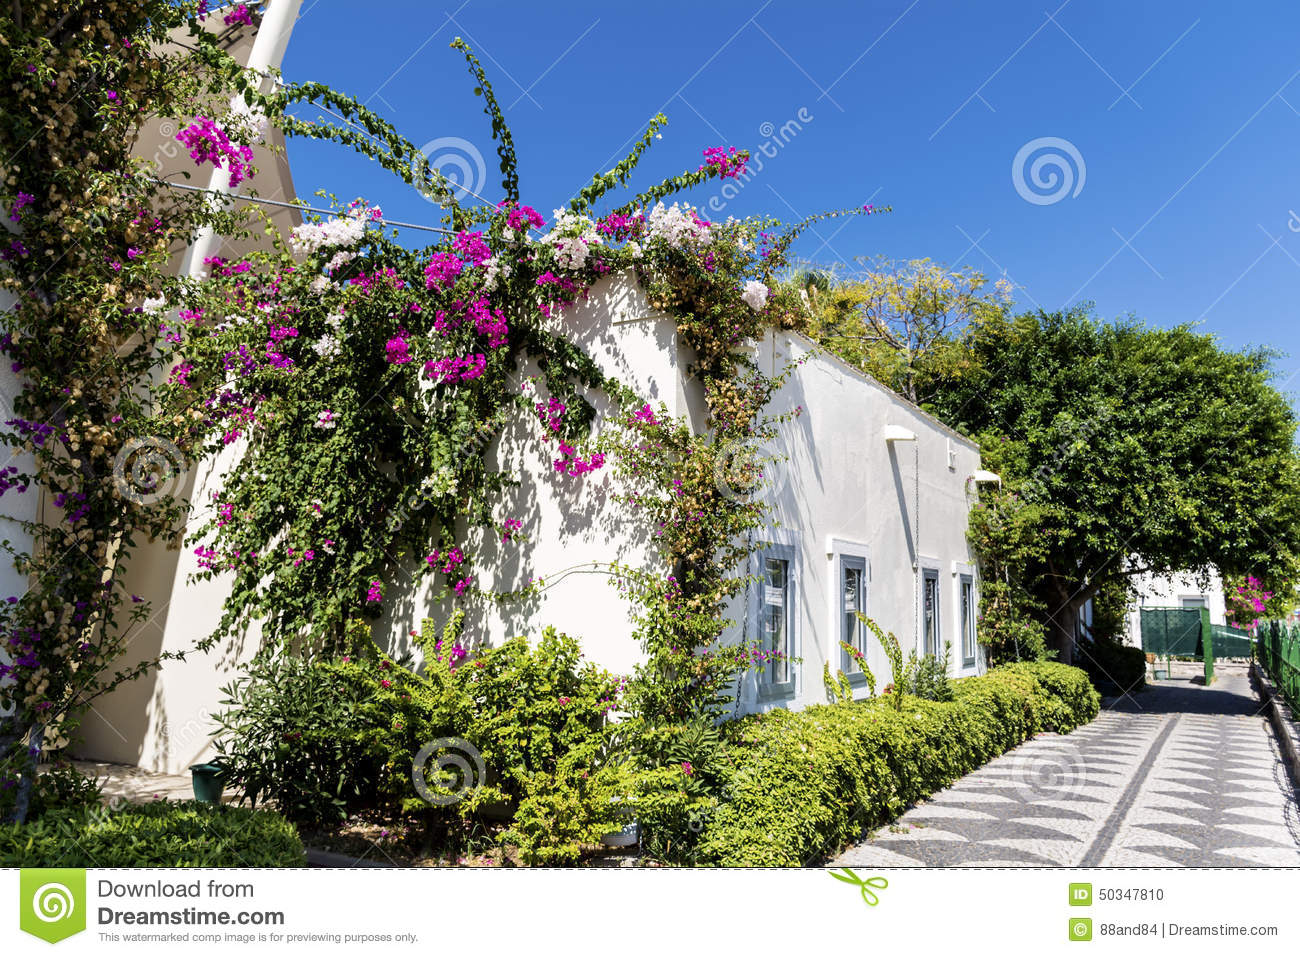 Typical turkish street with white house and bougainvillea flower typical turkish street with white house and bougainvillea flower mightylinksfo